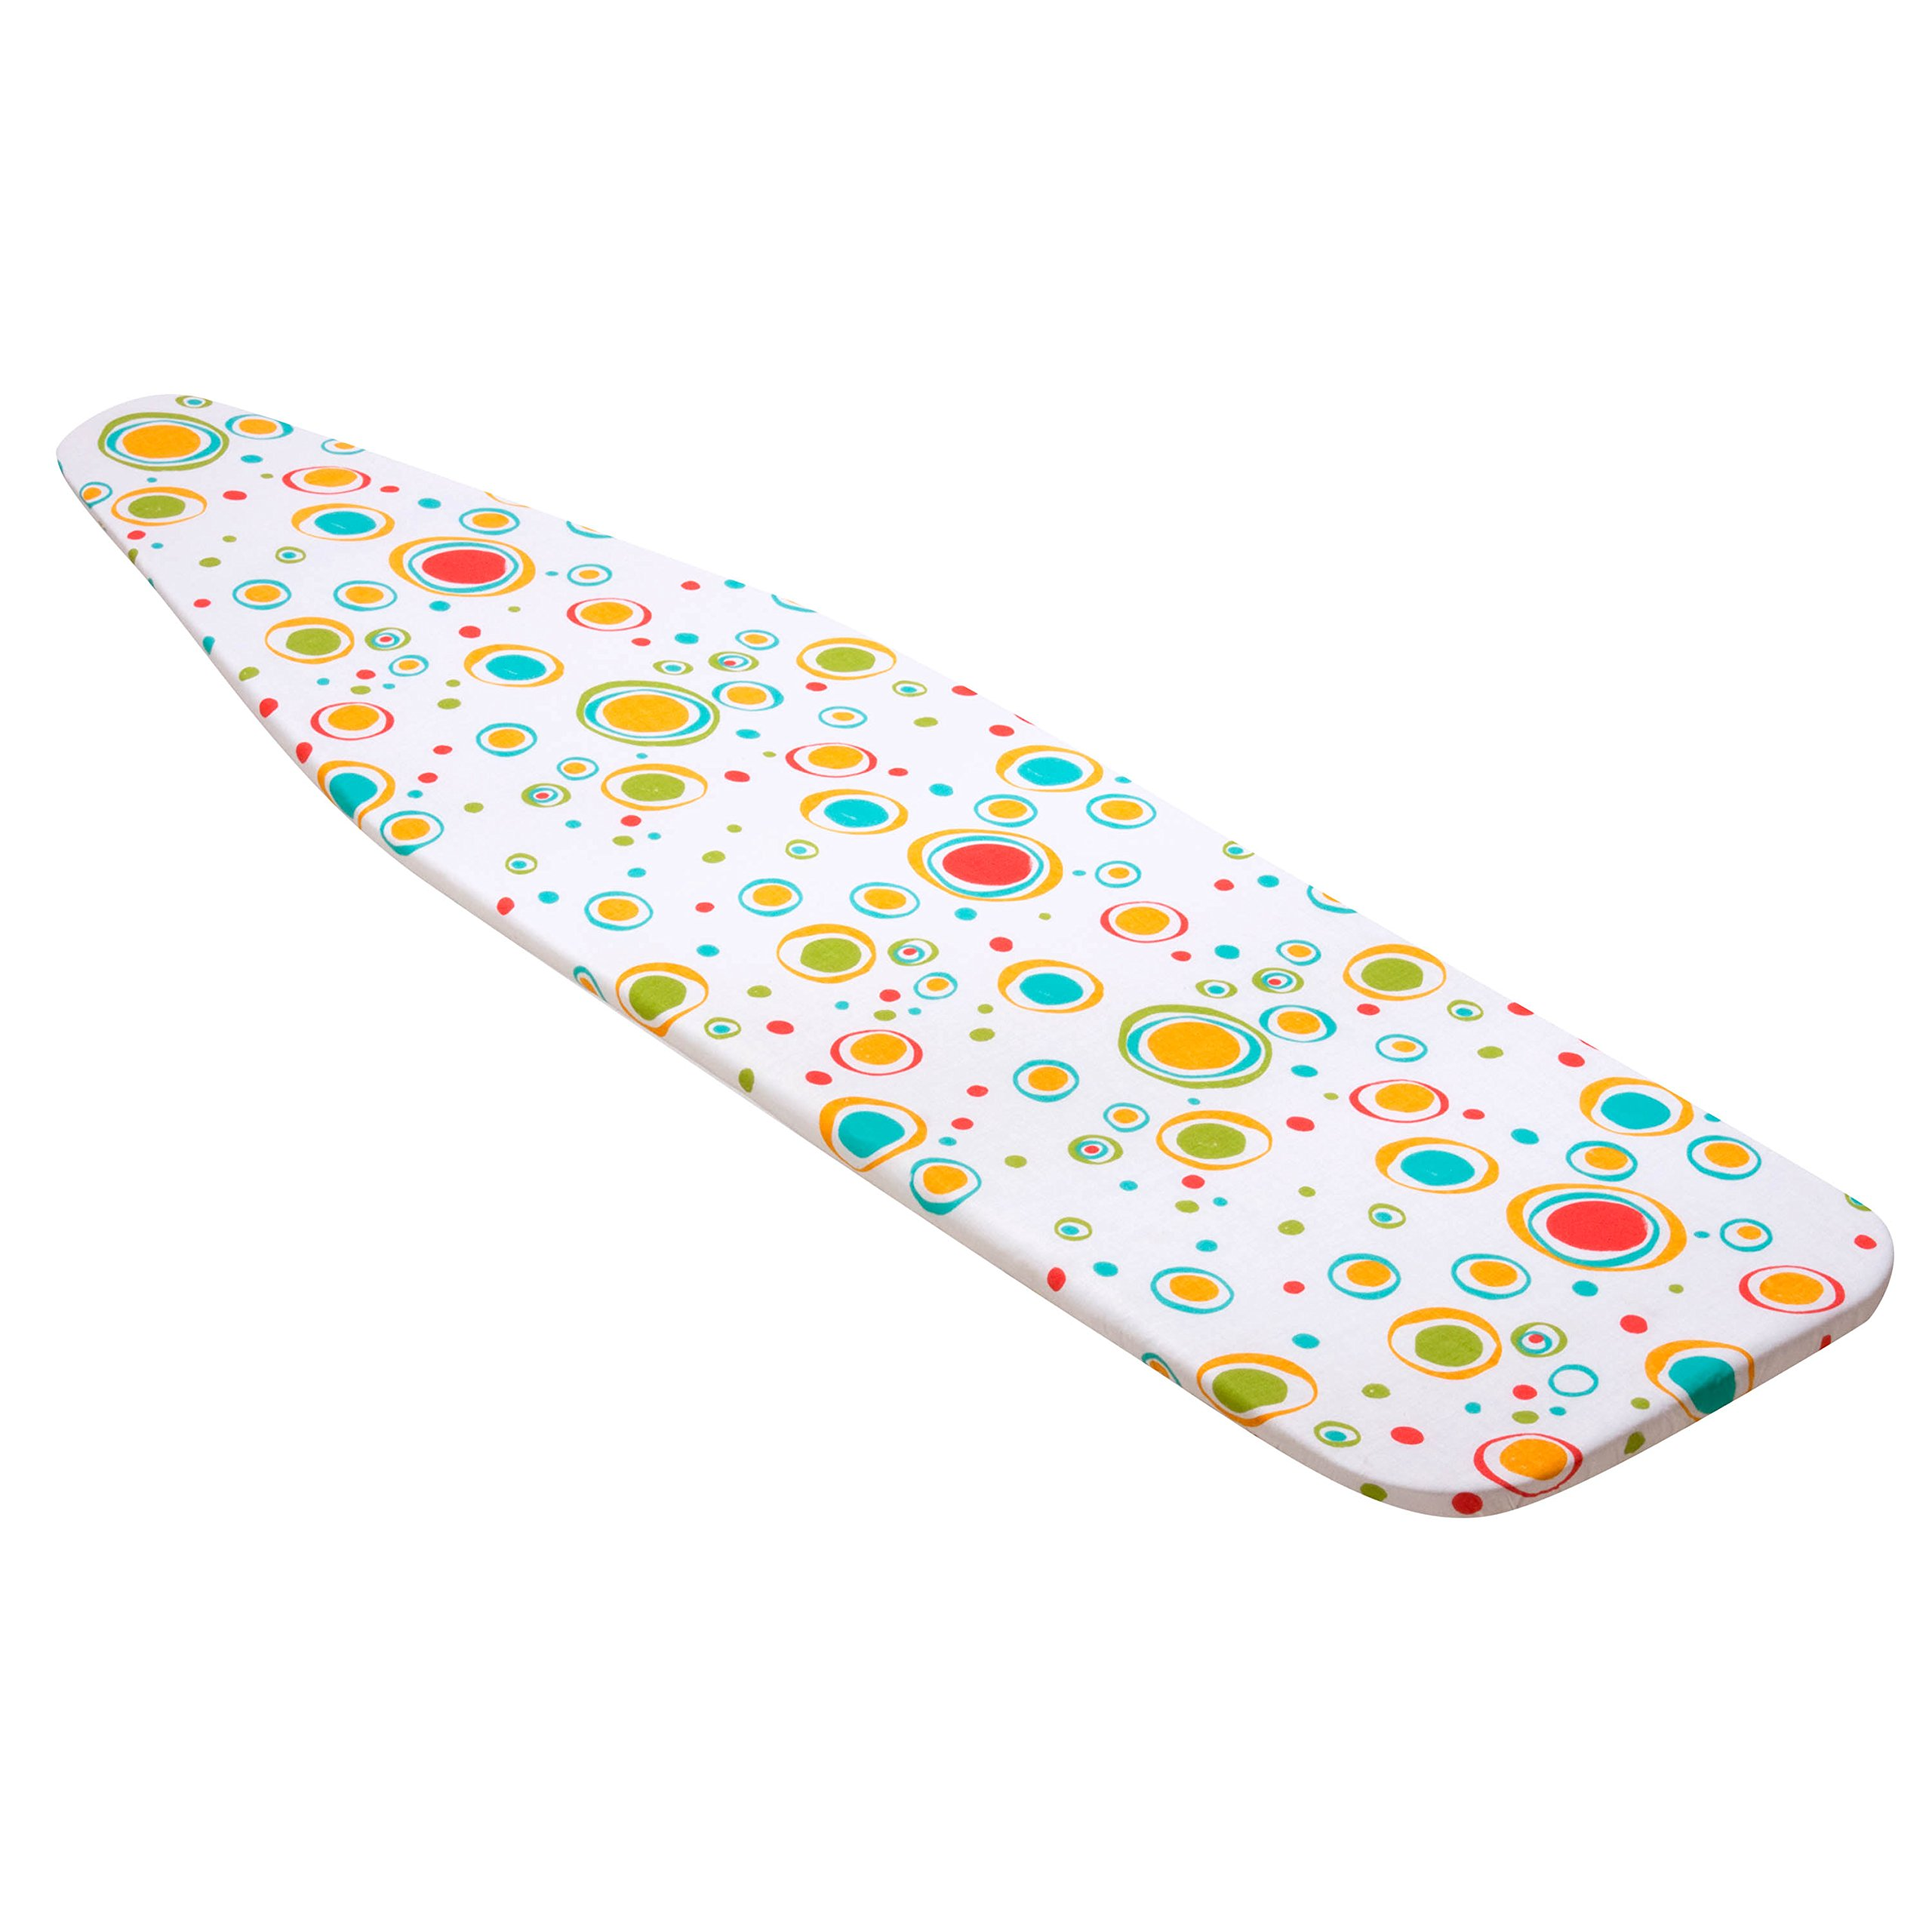 Honey-Can-Do IBC-03040 Superior Ironing Board Cover, Colorful Dots